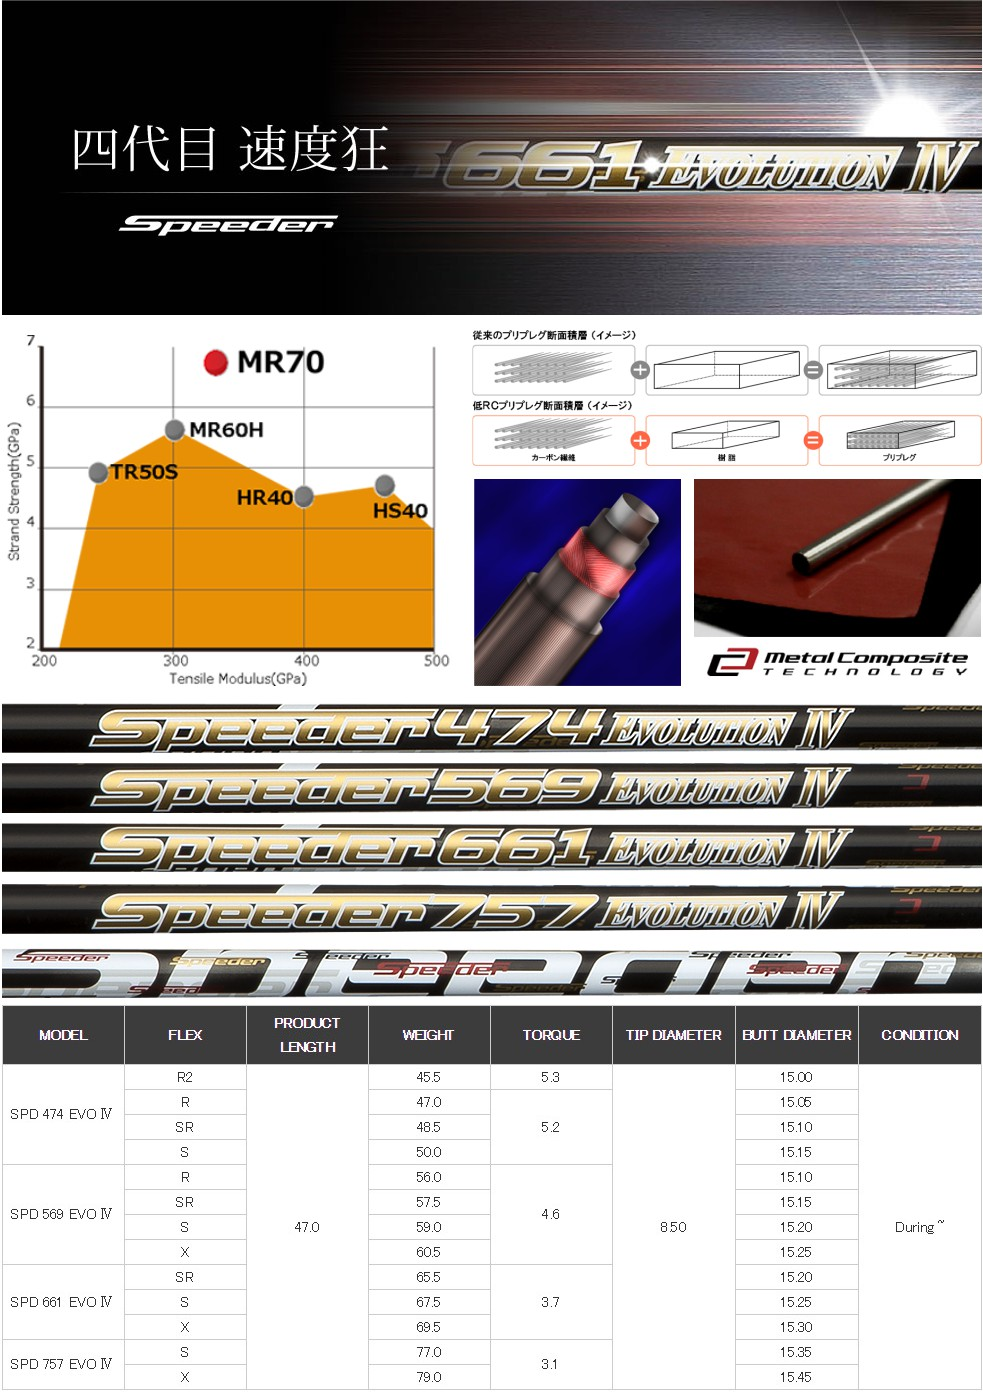 Fujikura Speeder Evolution IV Shaft